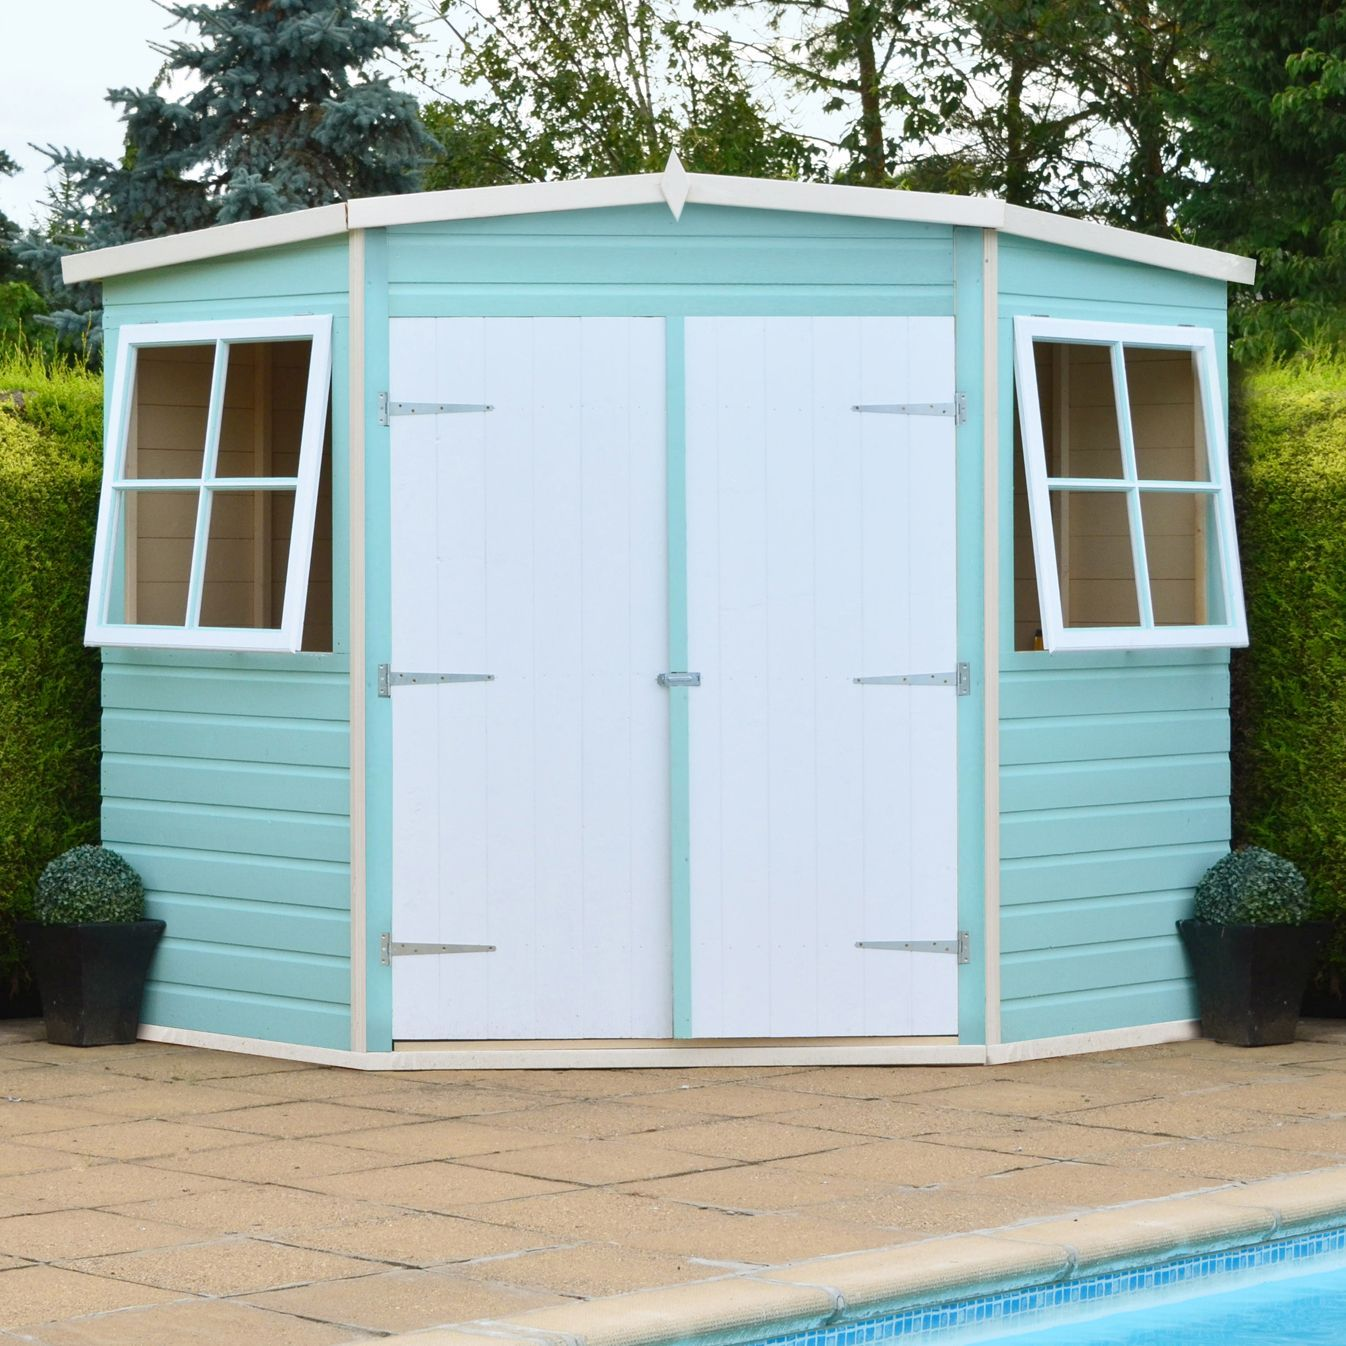 7x7 corner pent shiplap wooden shed with assembly service departments diy at bq - Garden Sheds 7x7